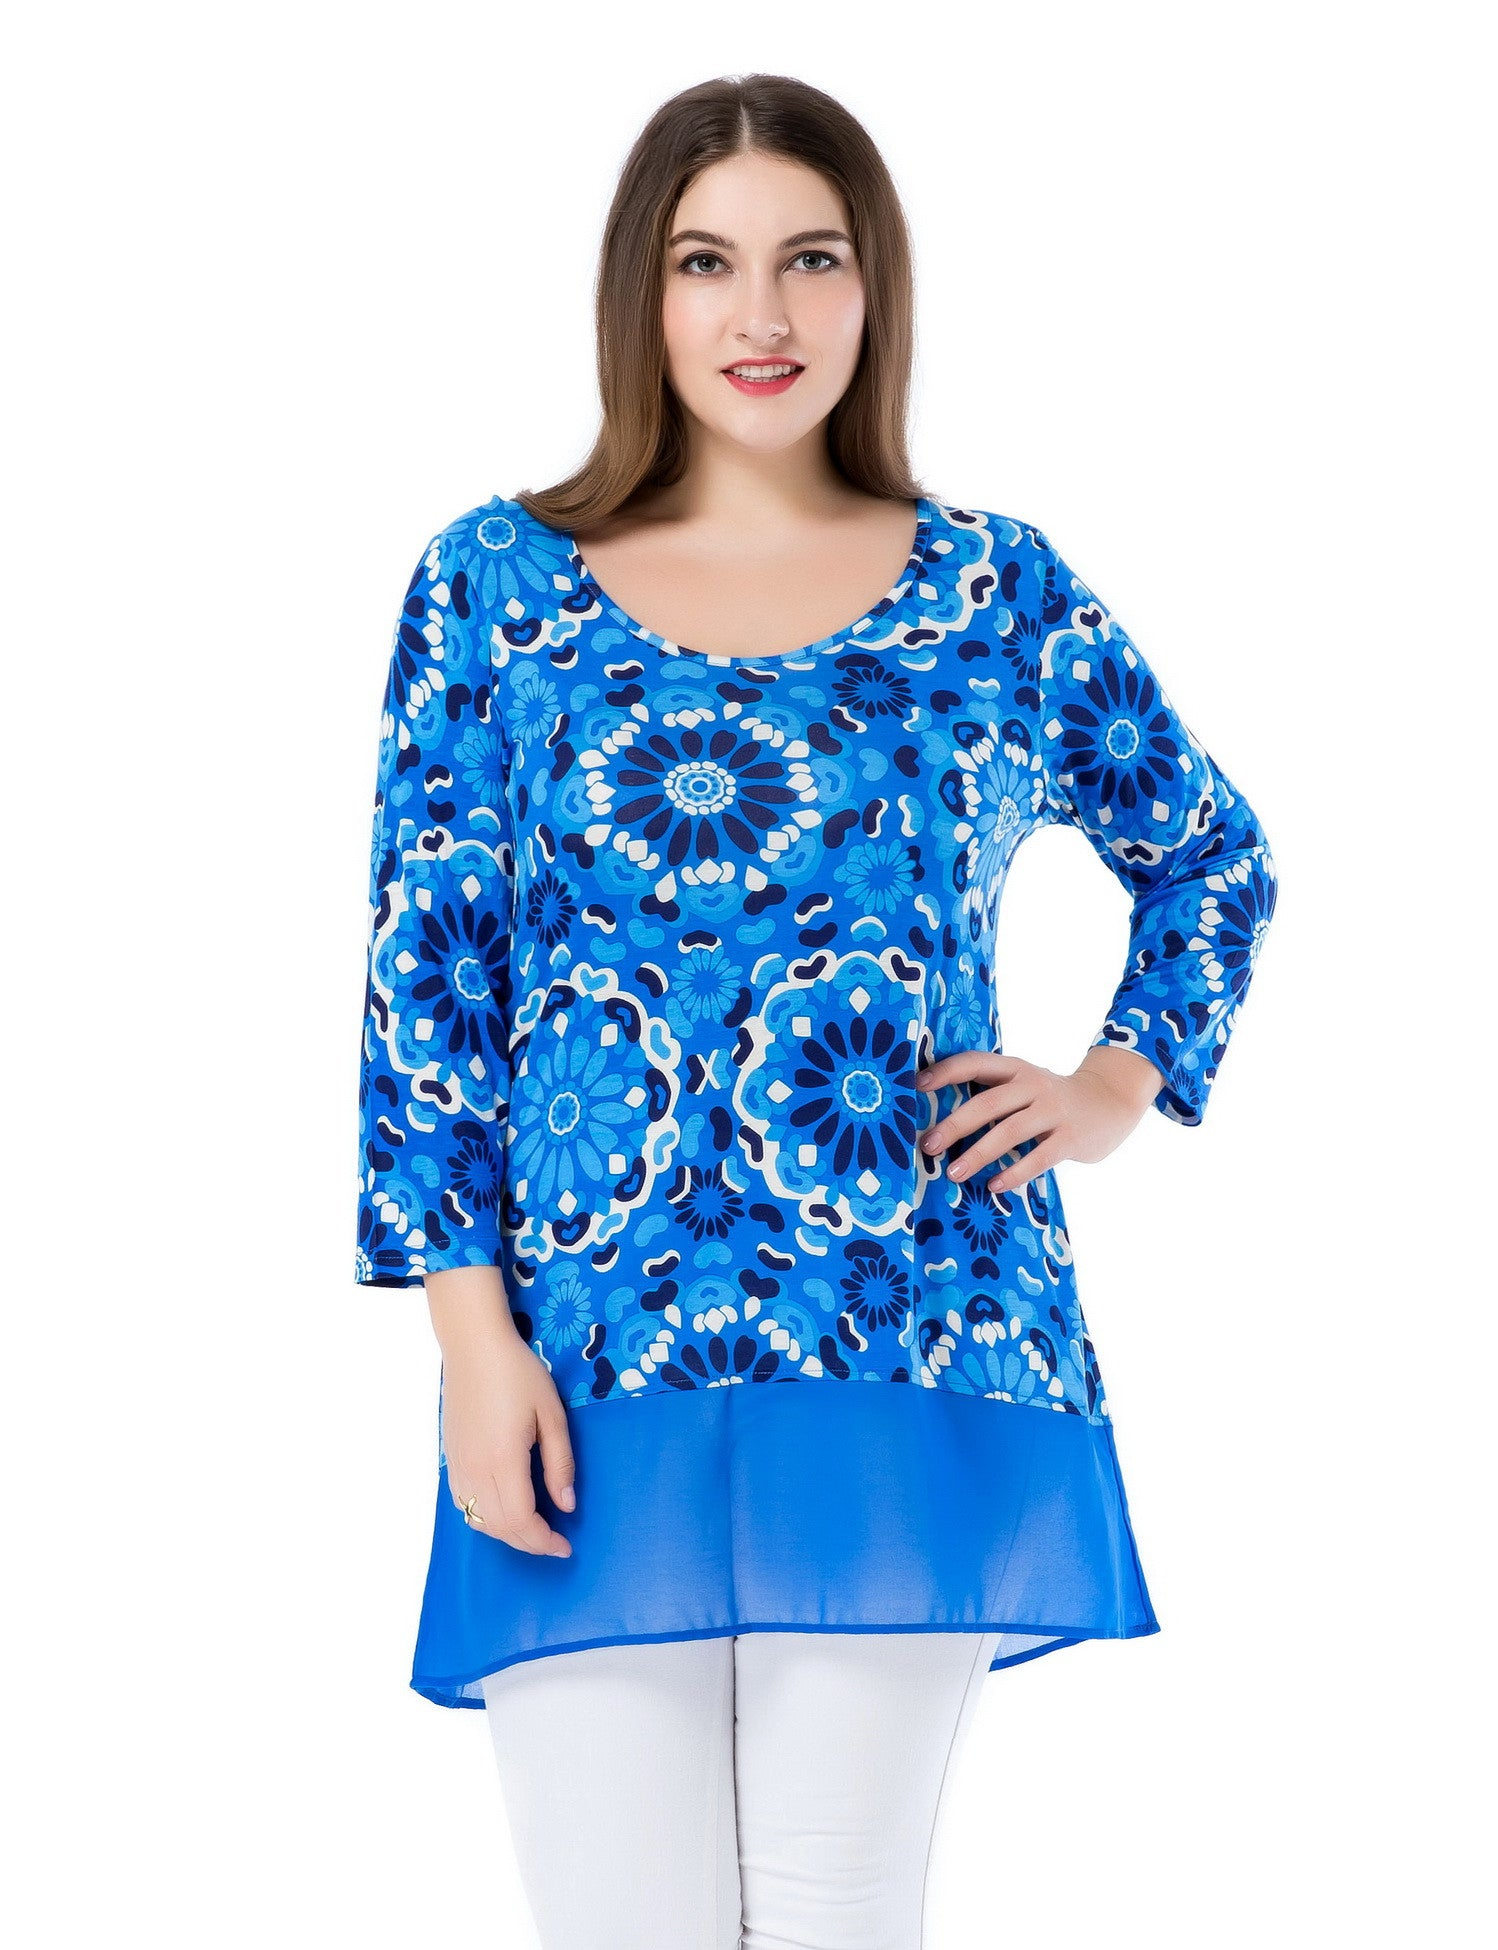 Chicwe Women's Plus Size Floral Printed Tunic Top with Chiffon Hem US16-26